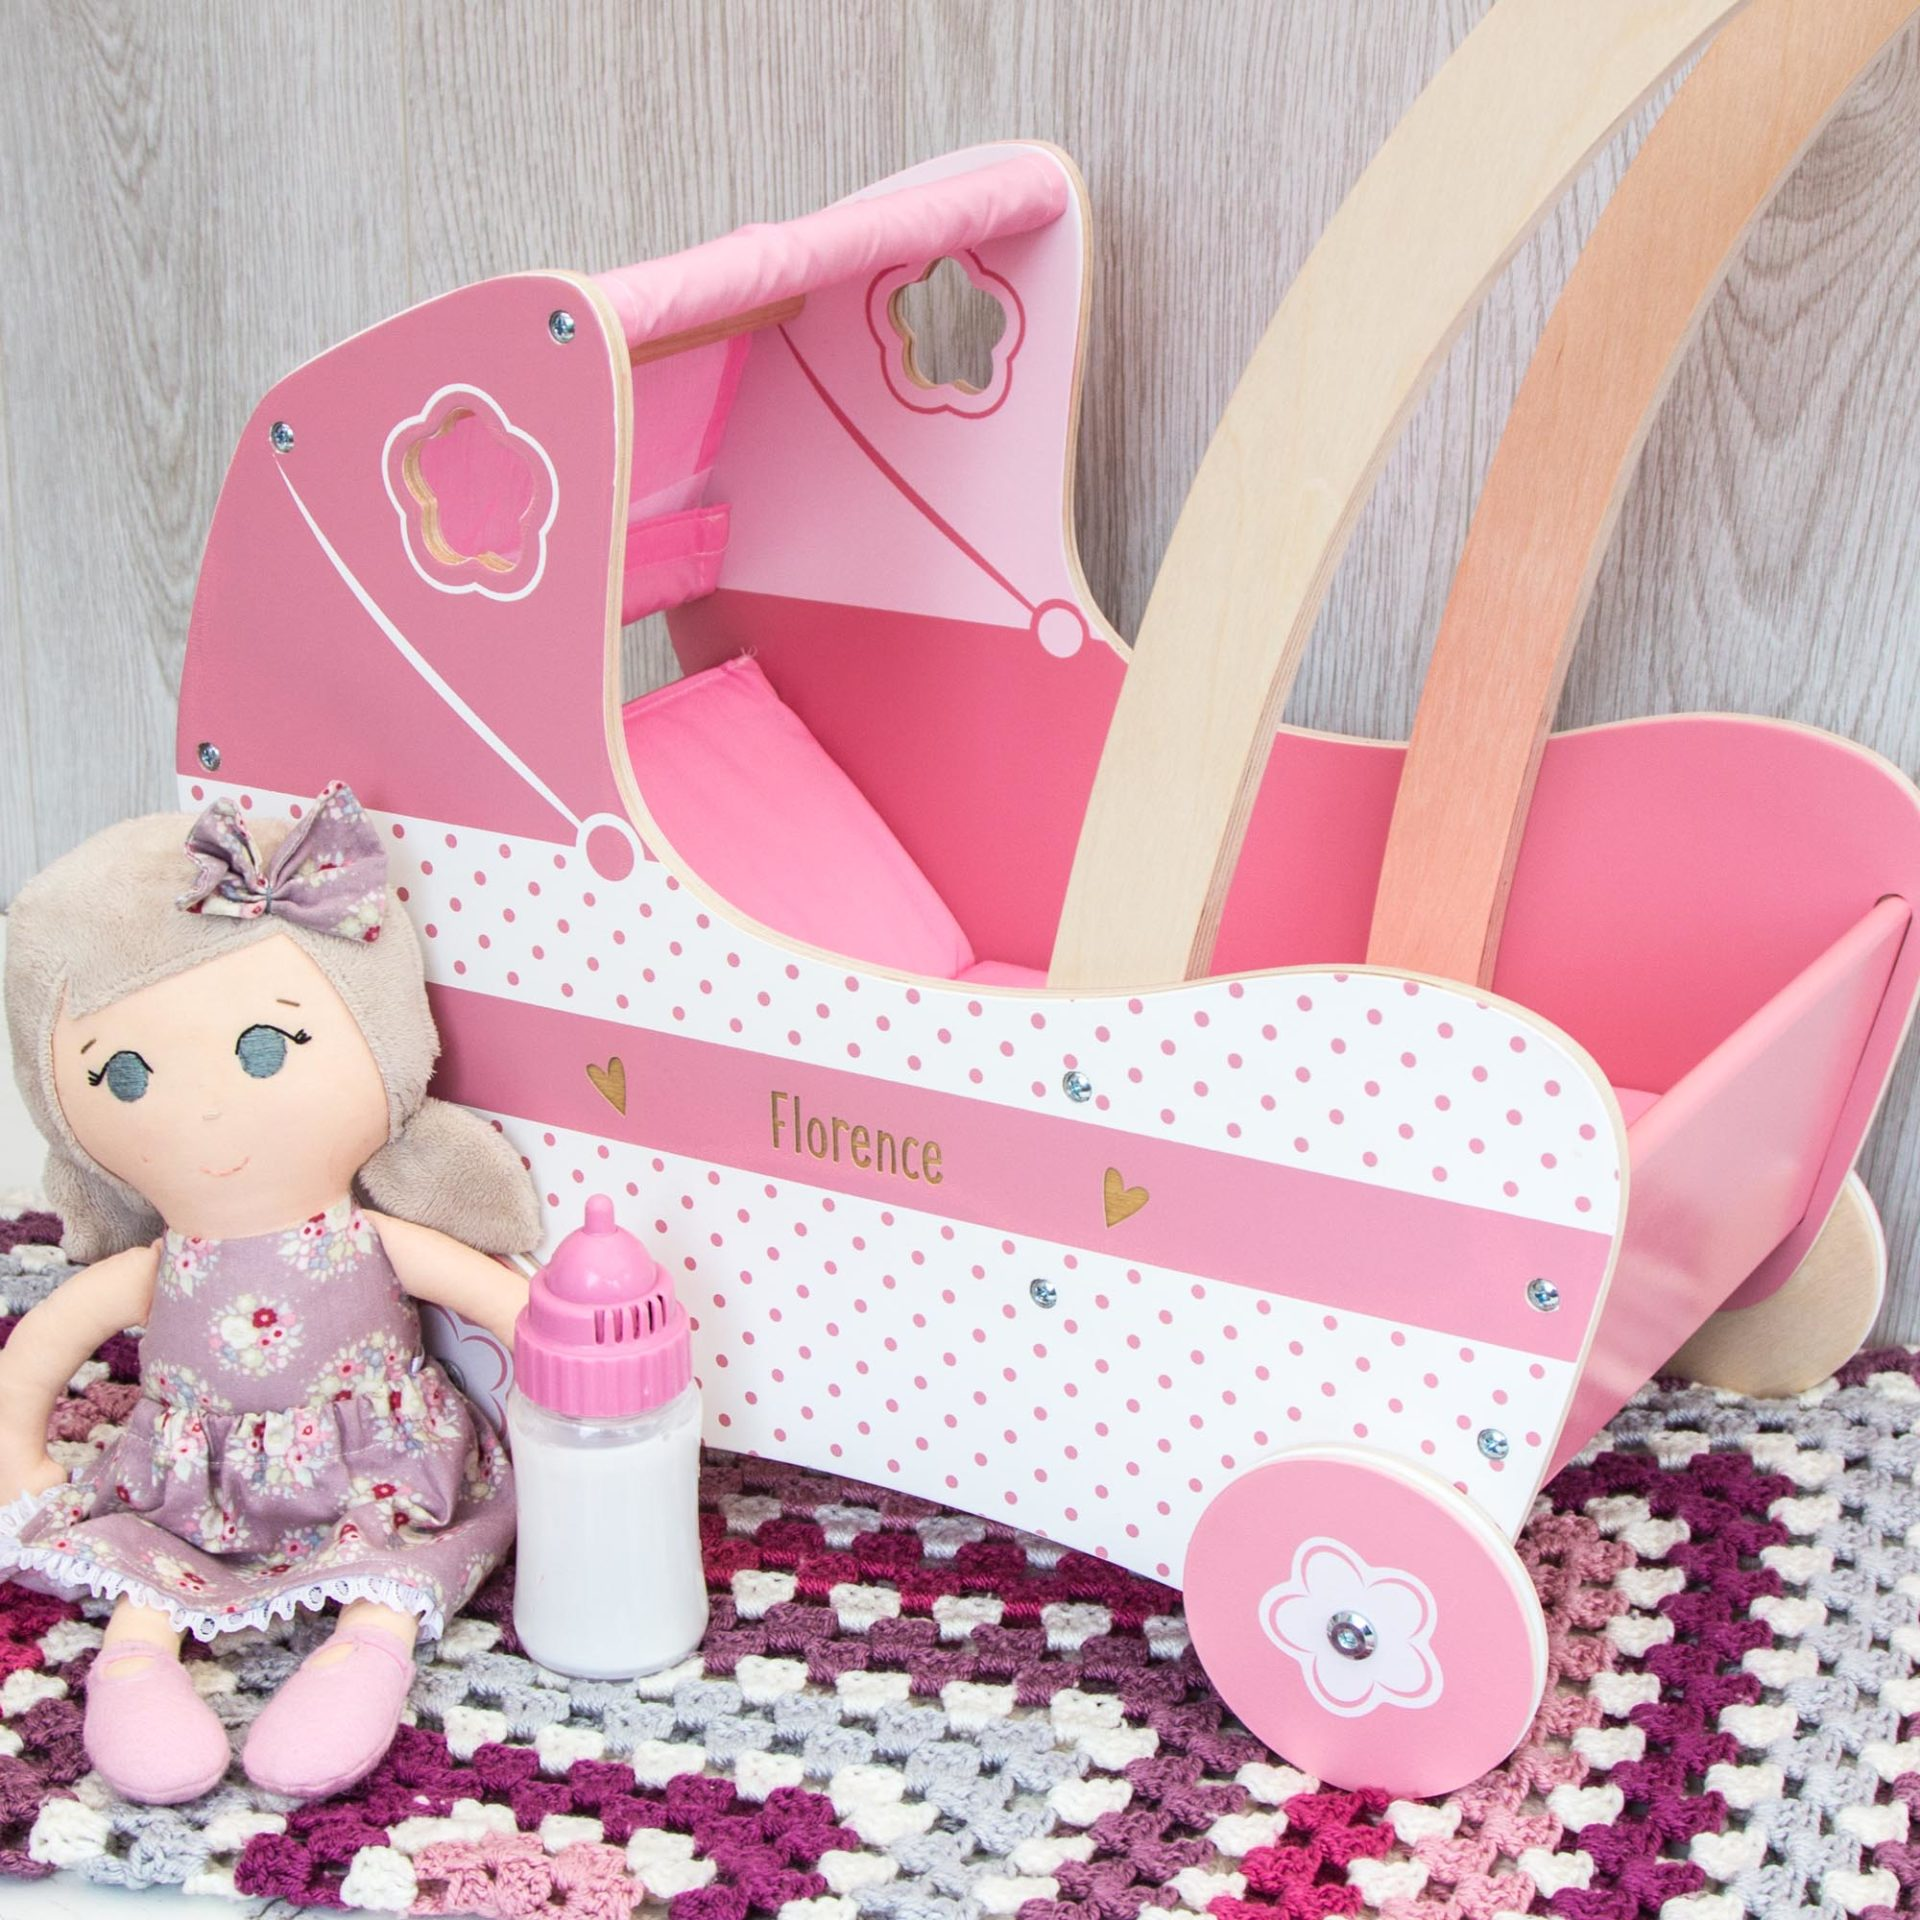 Dolls Pram Special Offer With Free Postage